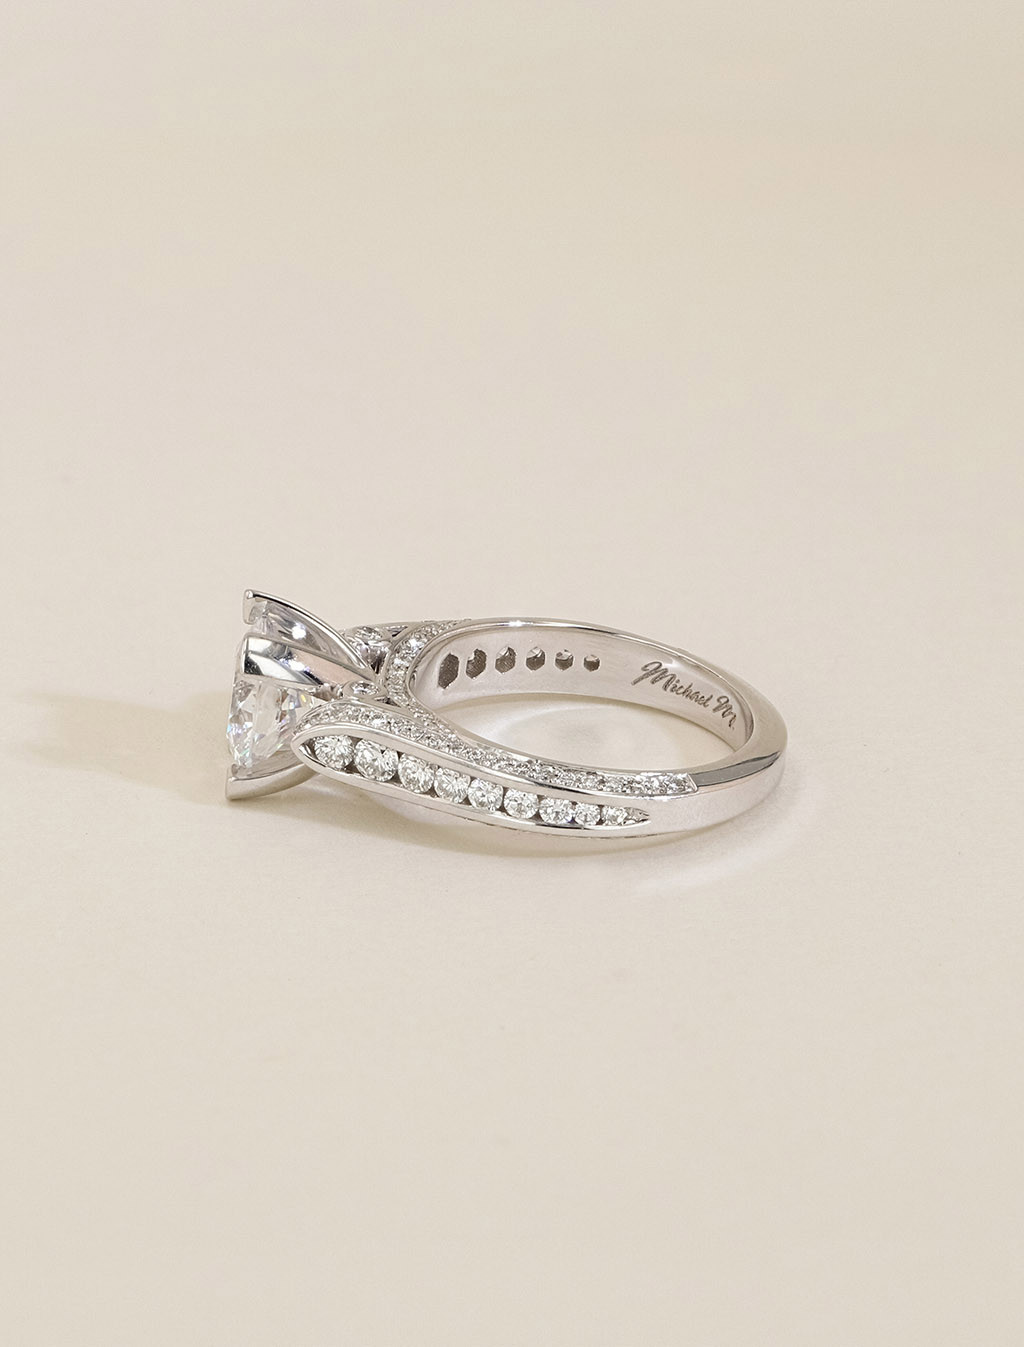 Michael M 18K Gold Round Channel Diamond Engagement Ring Setting side view